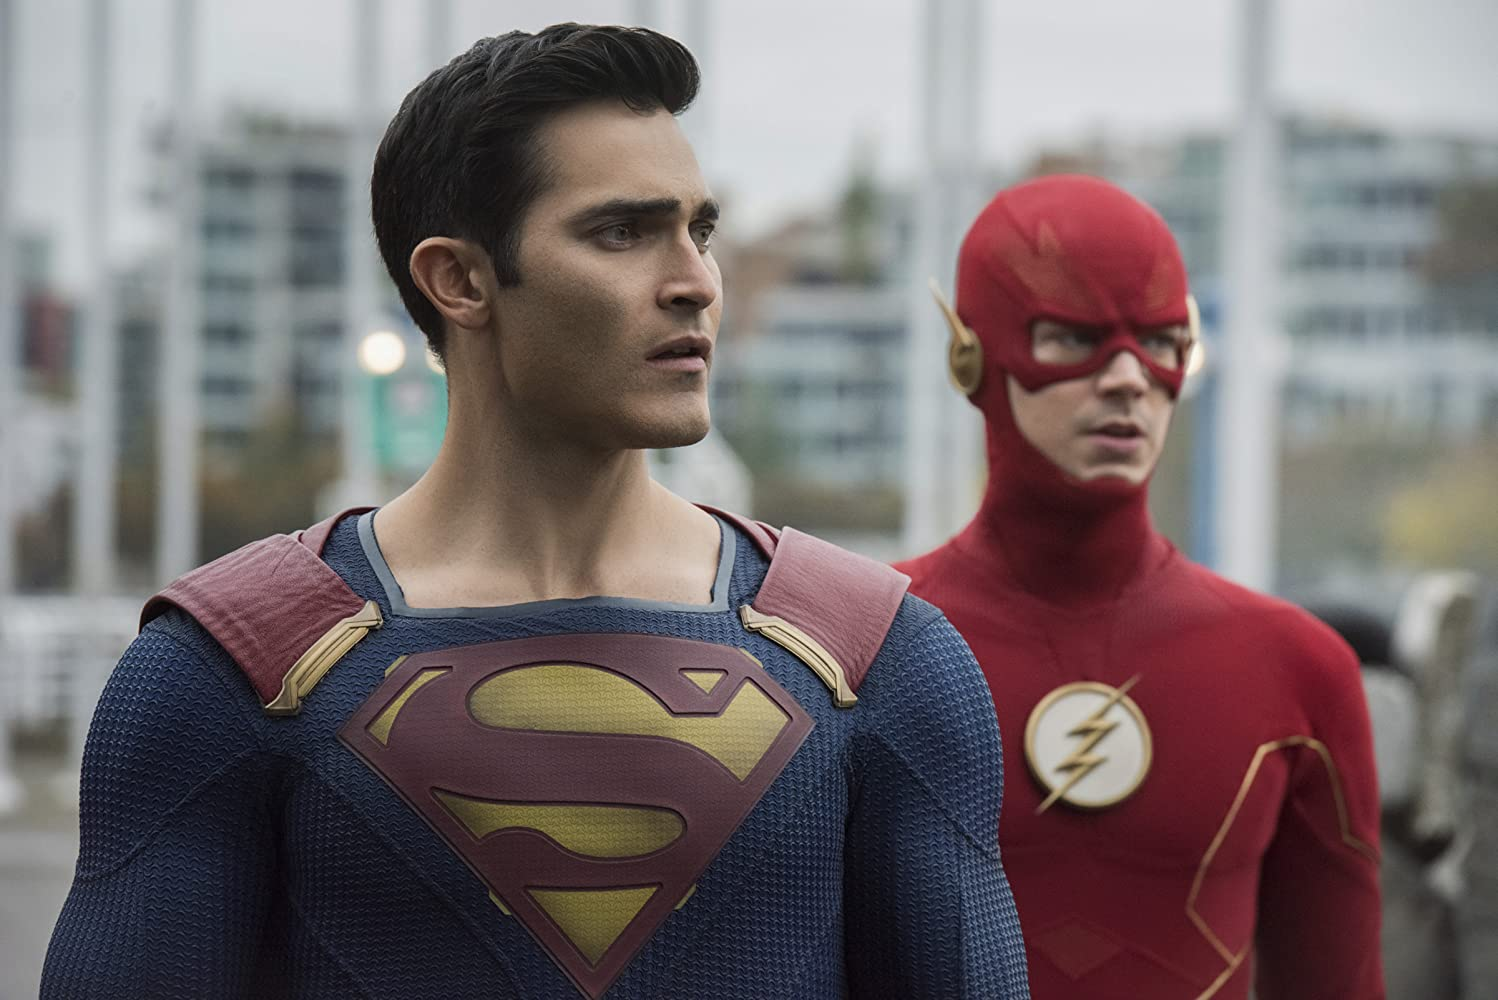 Tyler Hoechlin and Grant Gustin in Supergirl (2015)